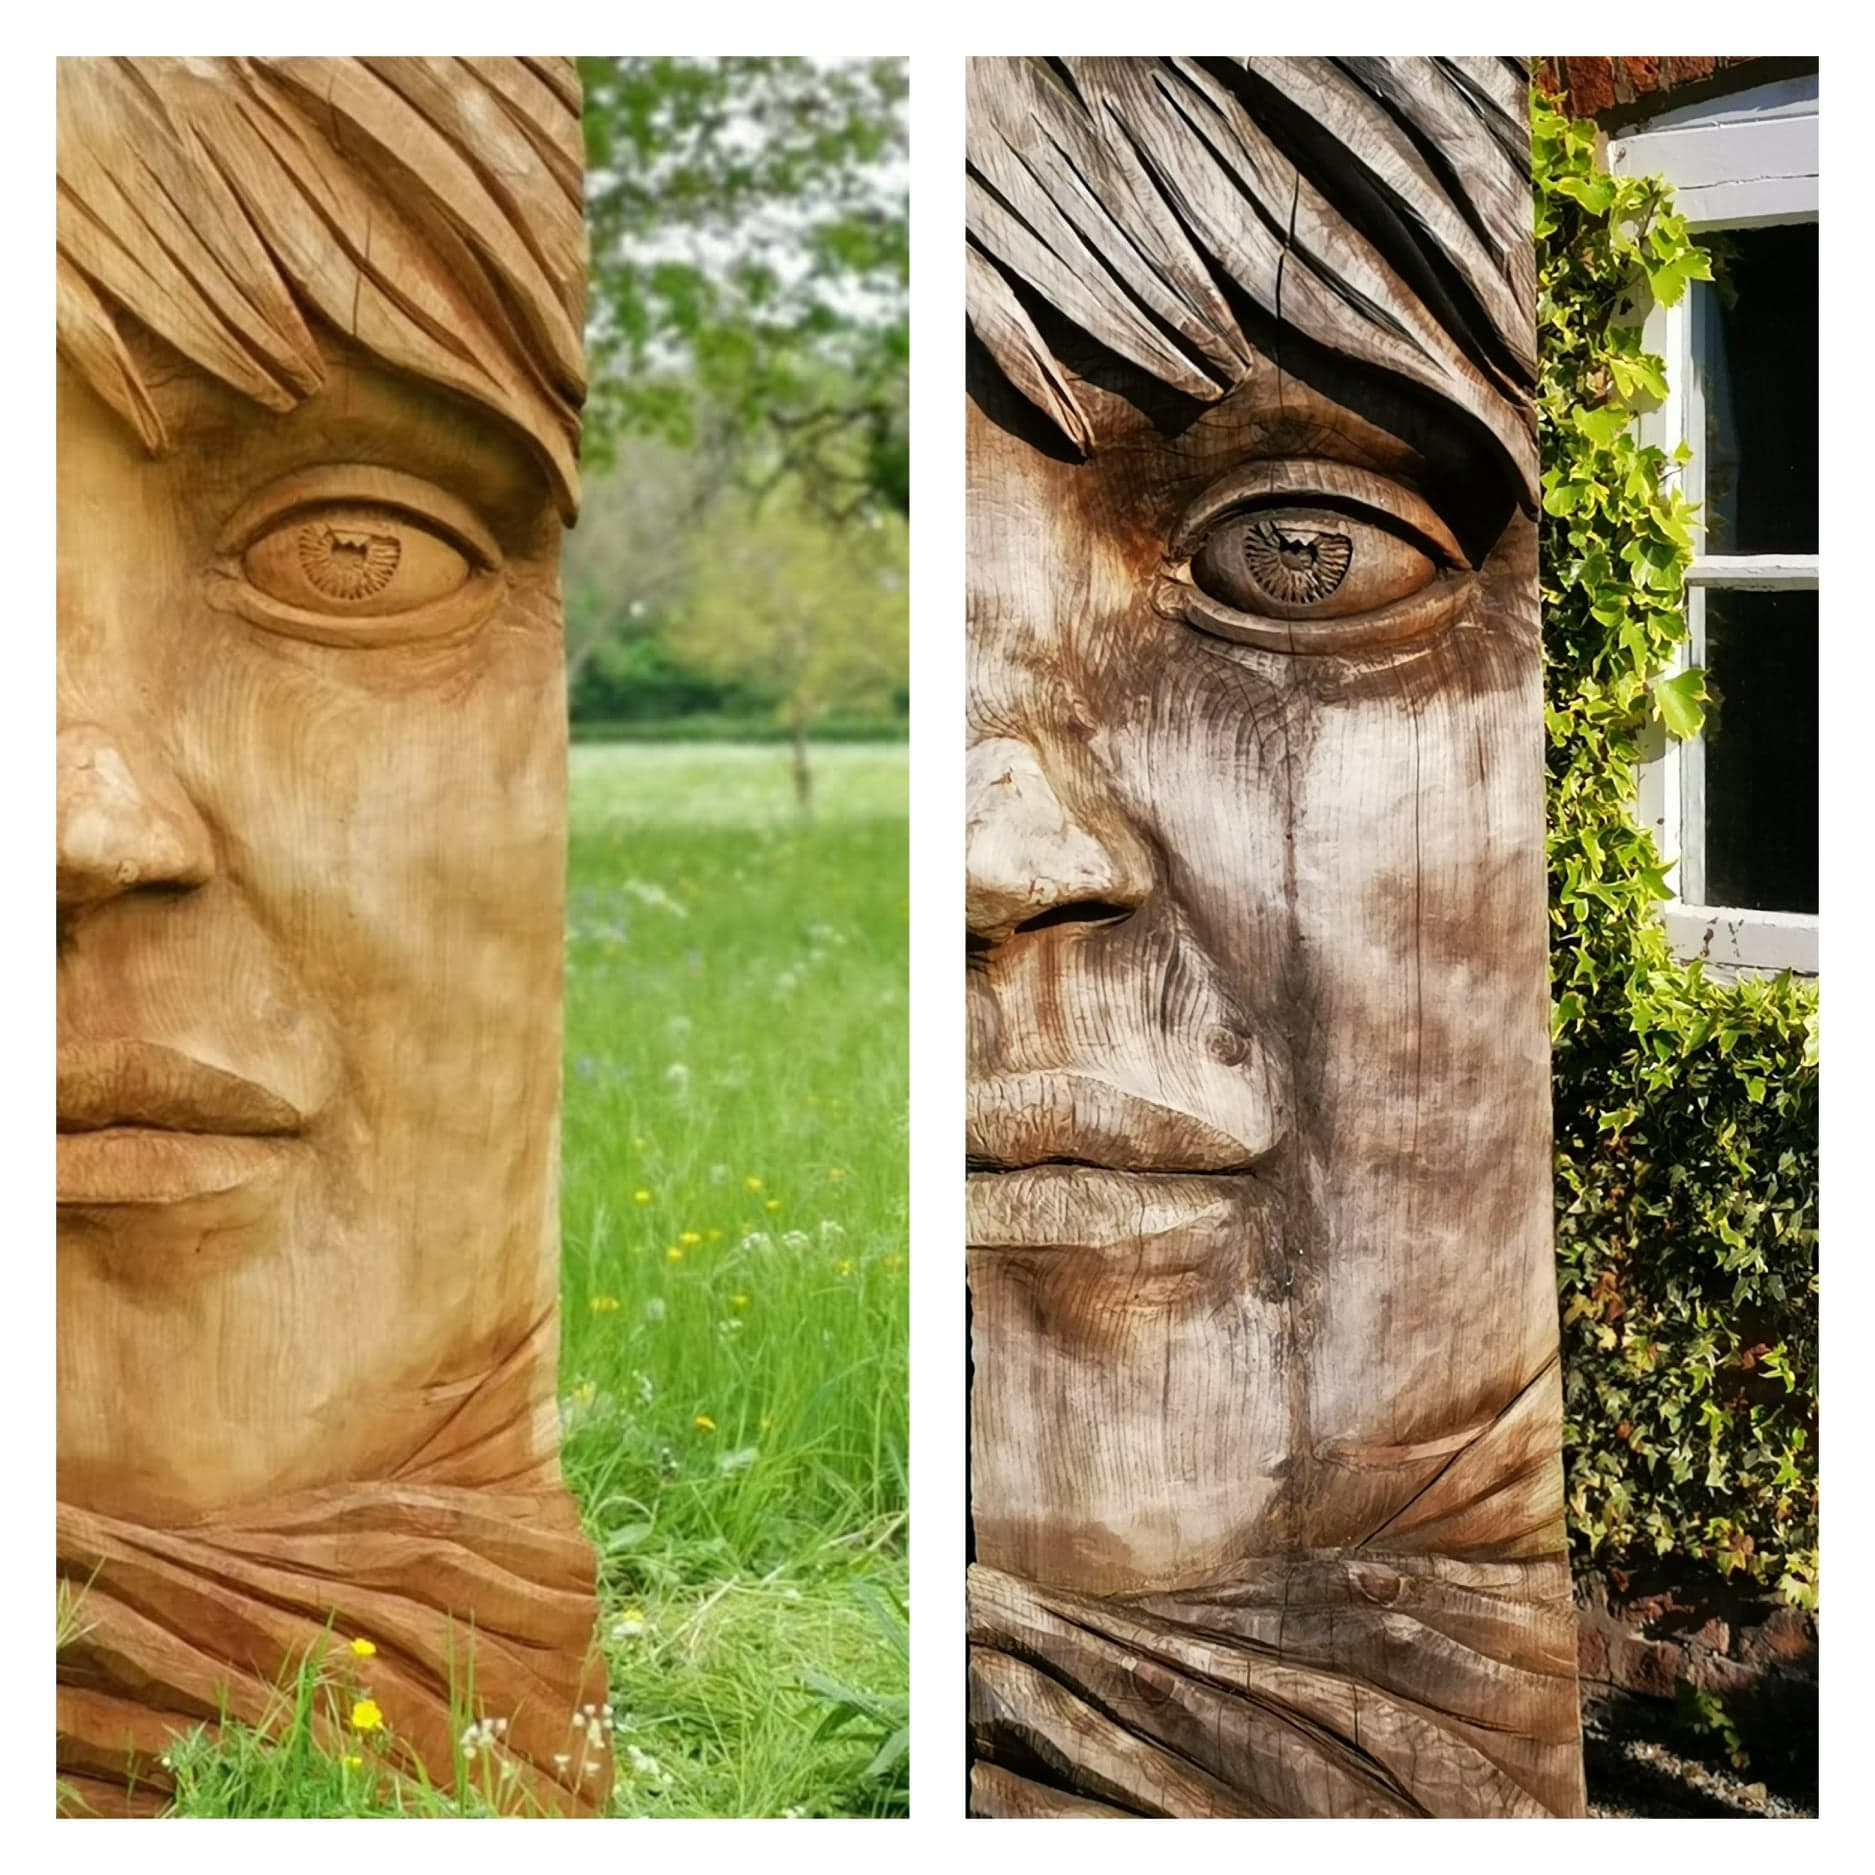 Wood or Bronze Sculpture: A side-by-side photo shows the same wooden sculpture of a stylised woman's face years apart. Photo one is warm and smooth. Photo two has taken on rich, grey hues, and the weatherted wood now has the character of a real face